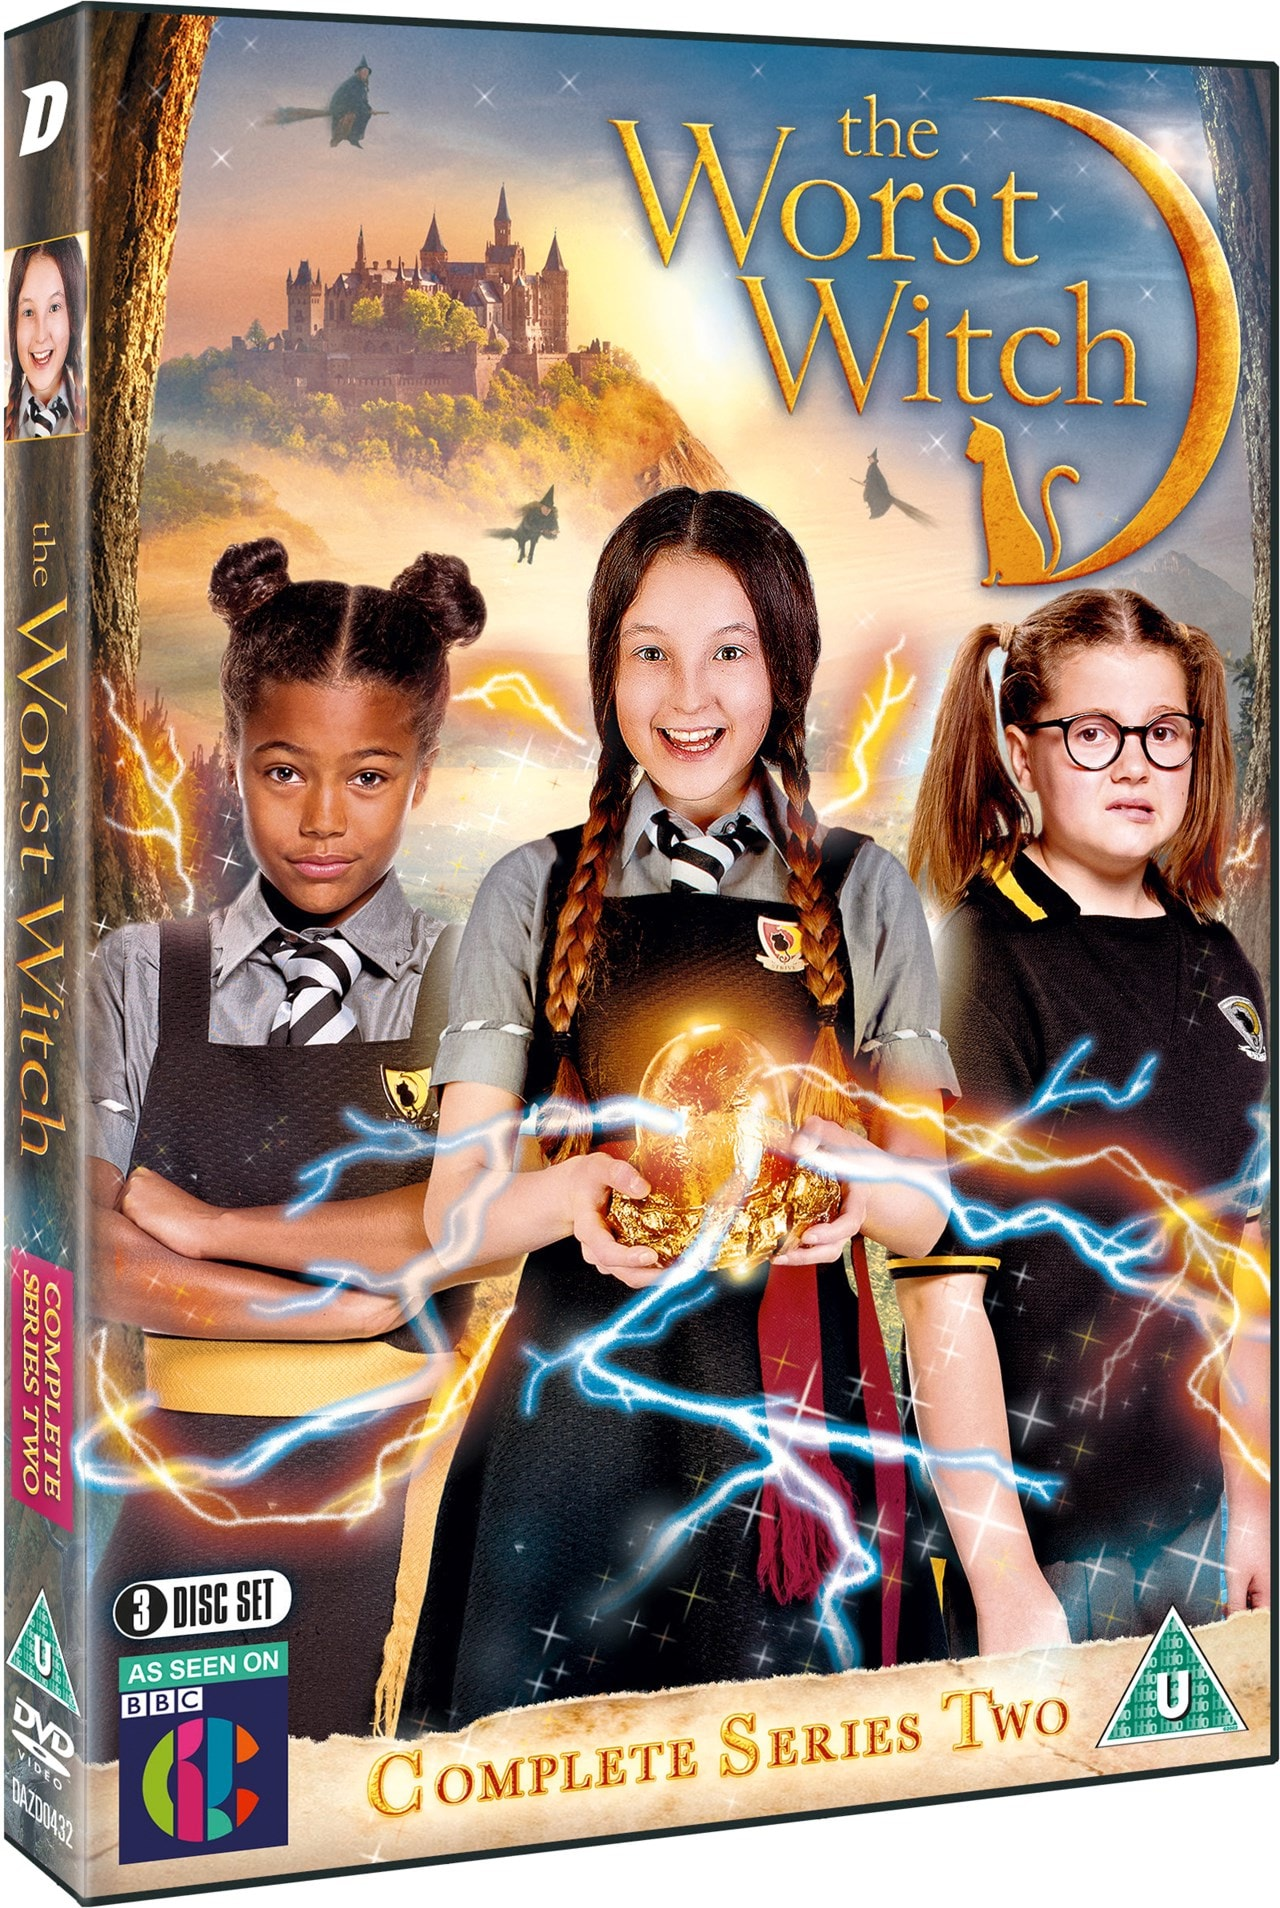 The Worst Witch: Complete Series 2 - 2